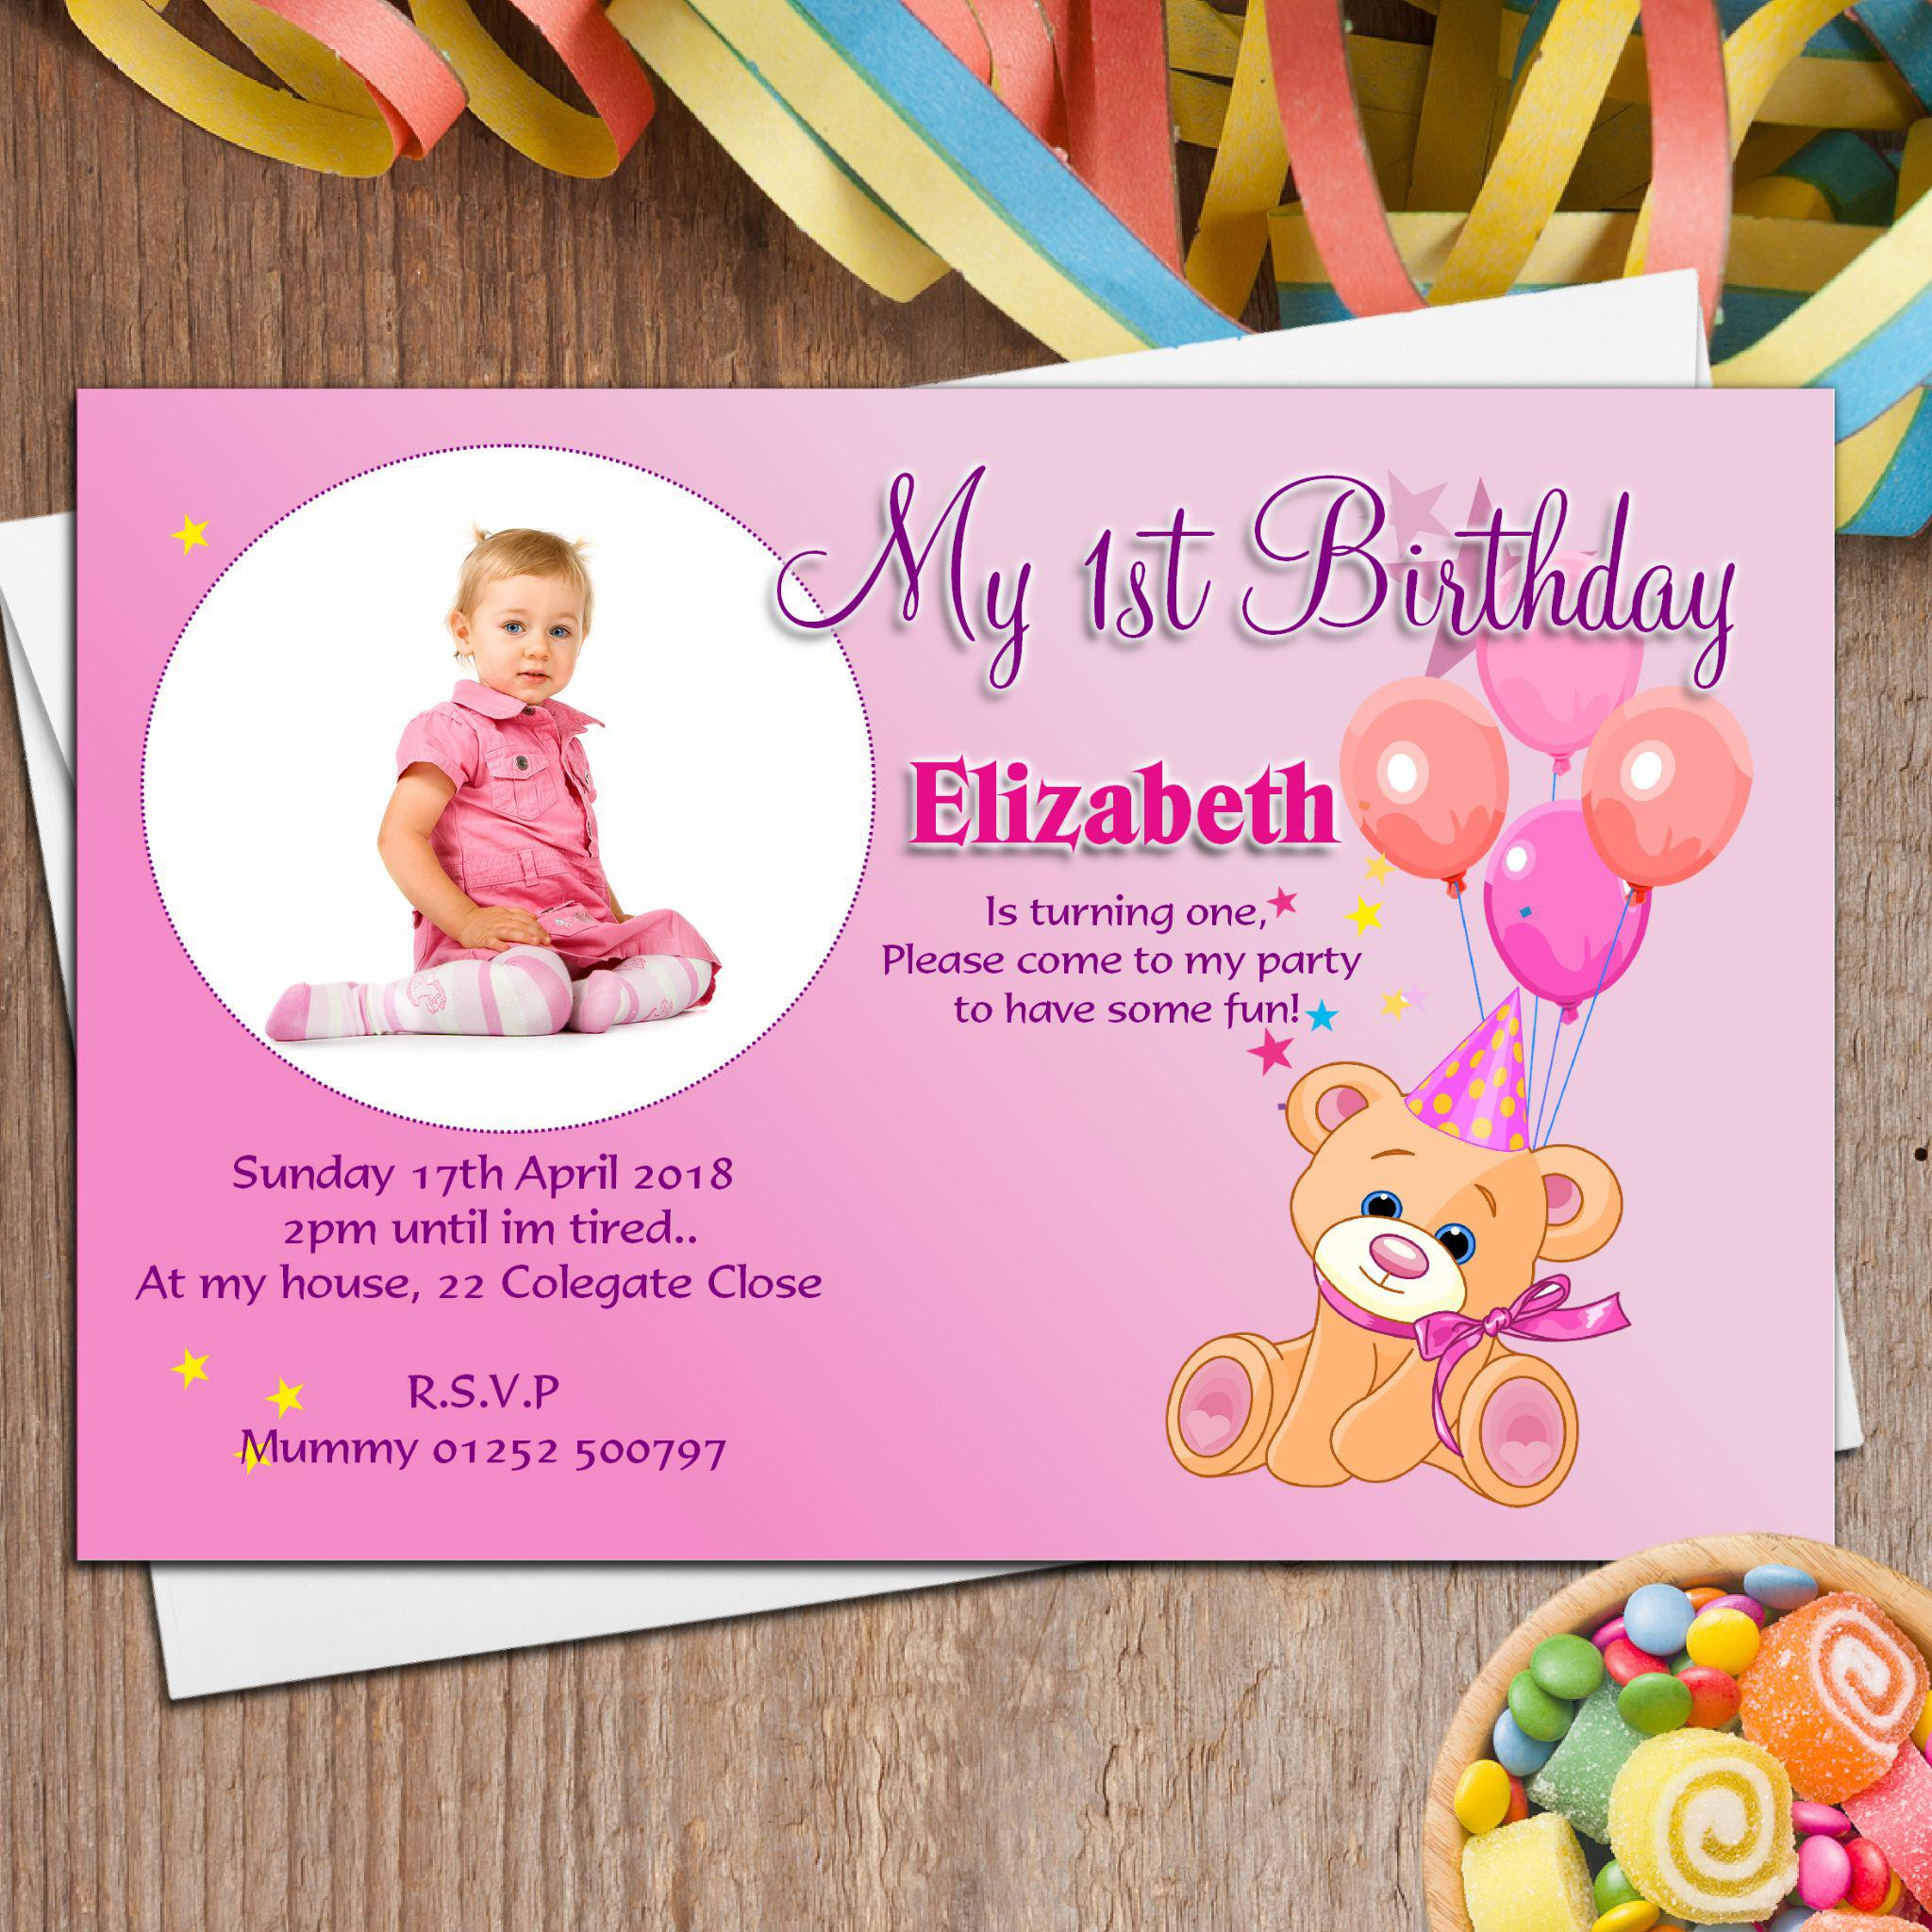 Birthday Invitations Cards Sample Wording Printable - Birthday invitation note sample